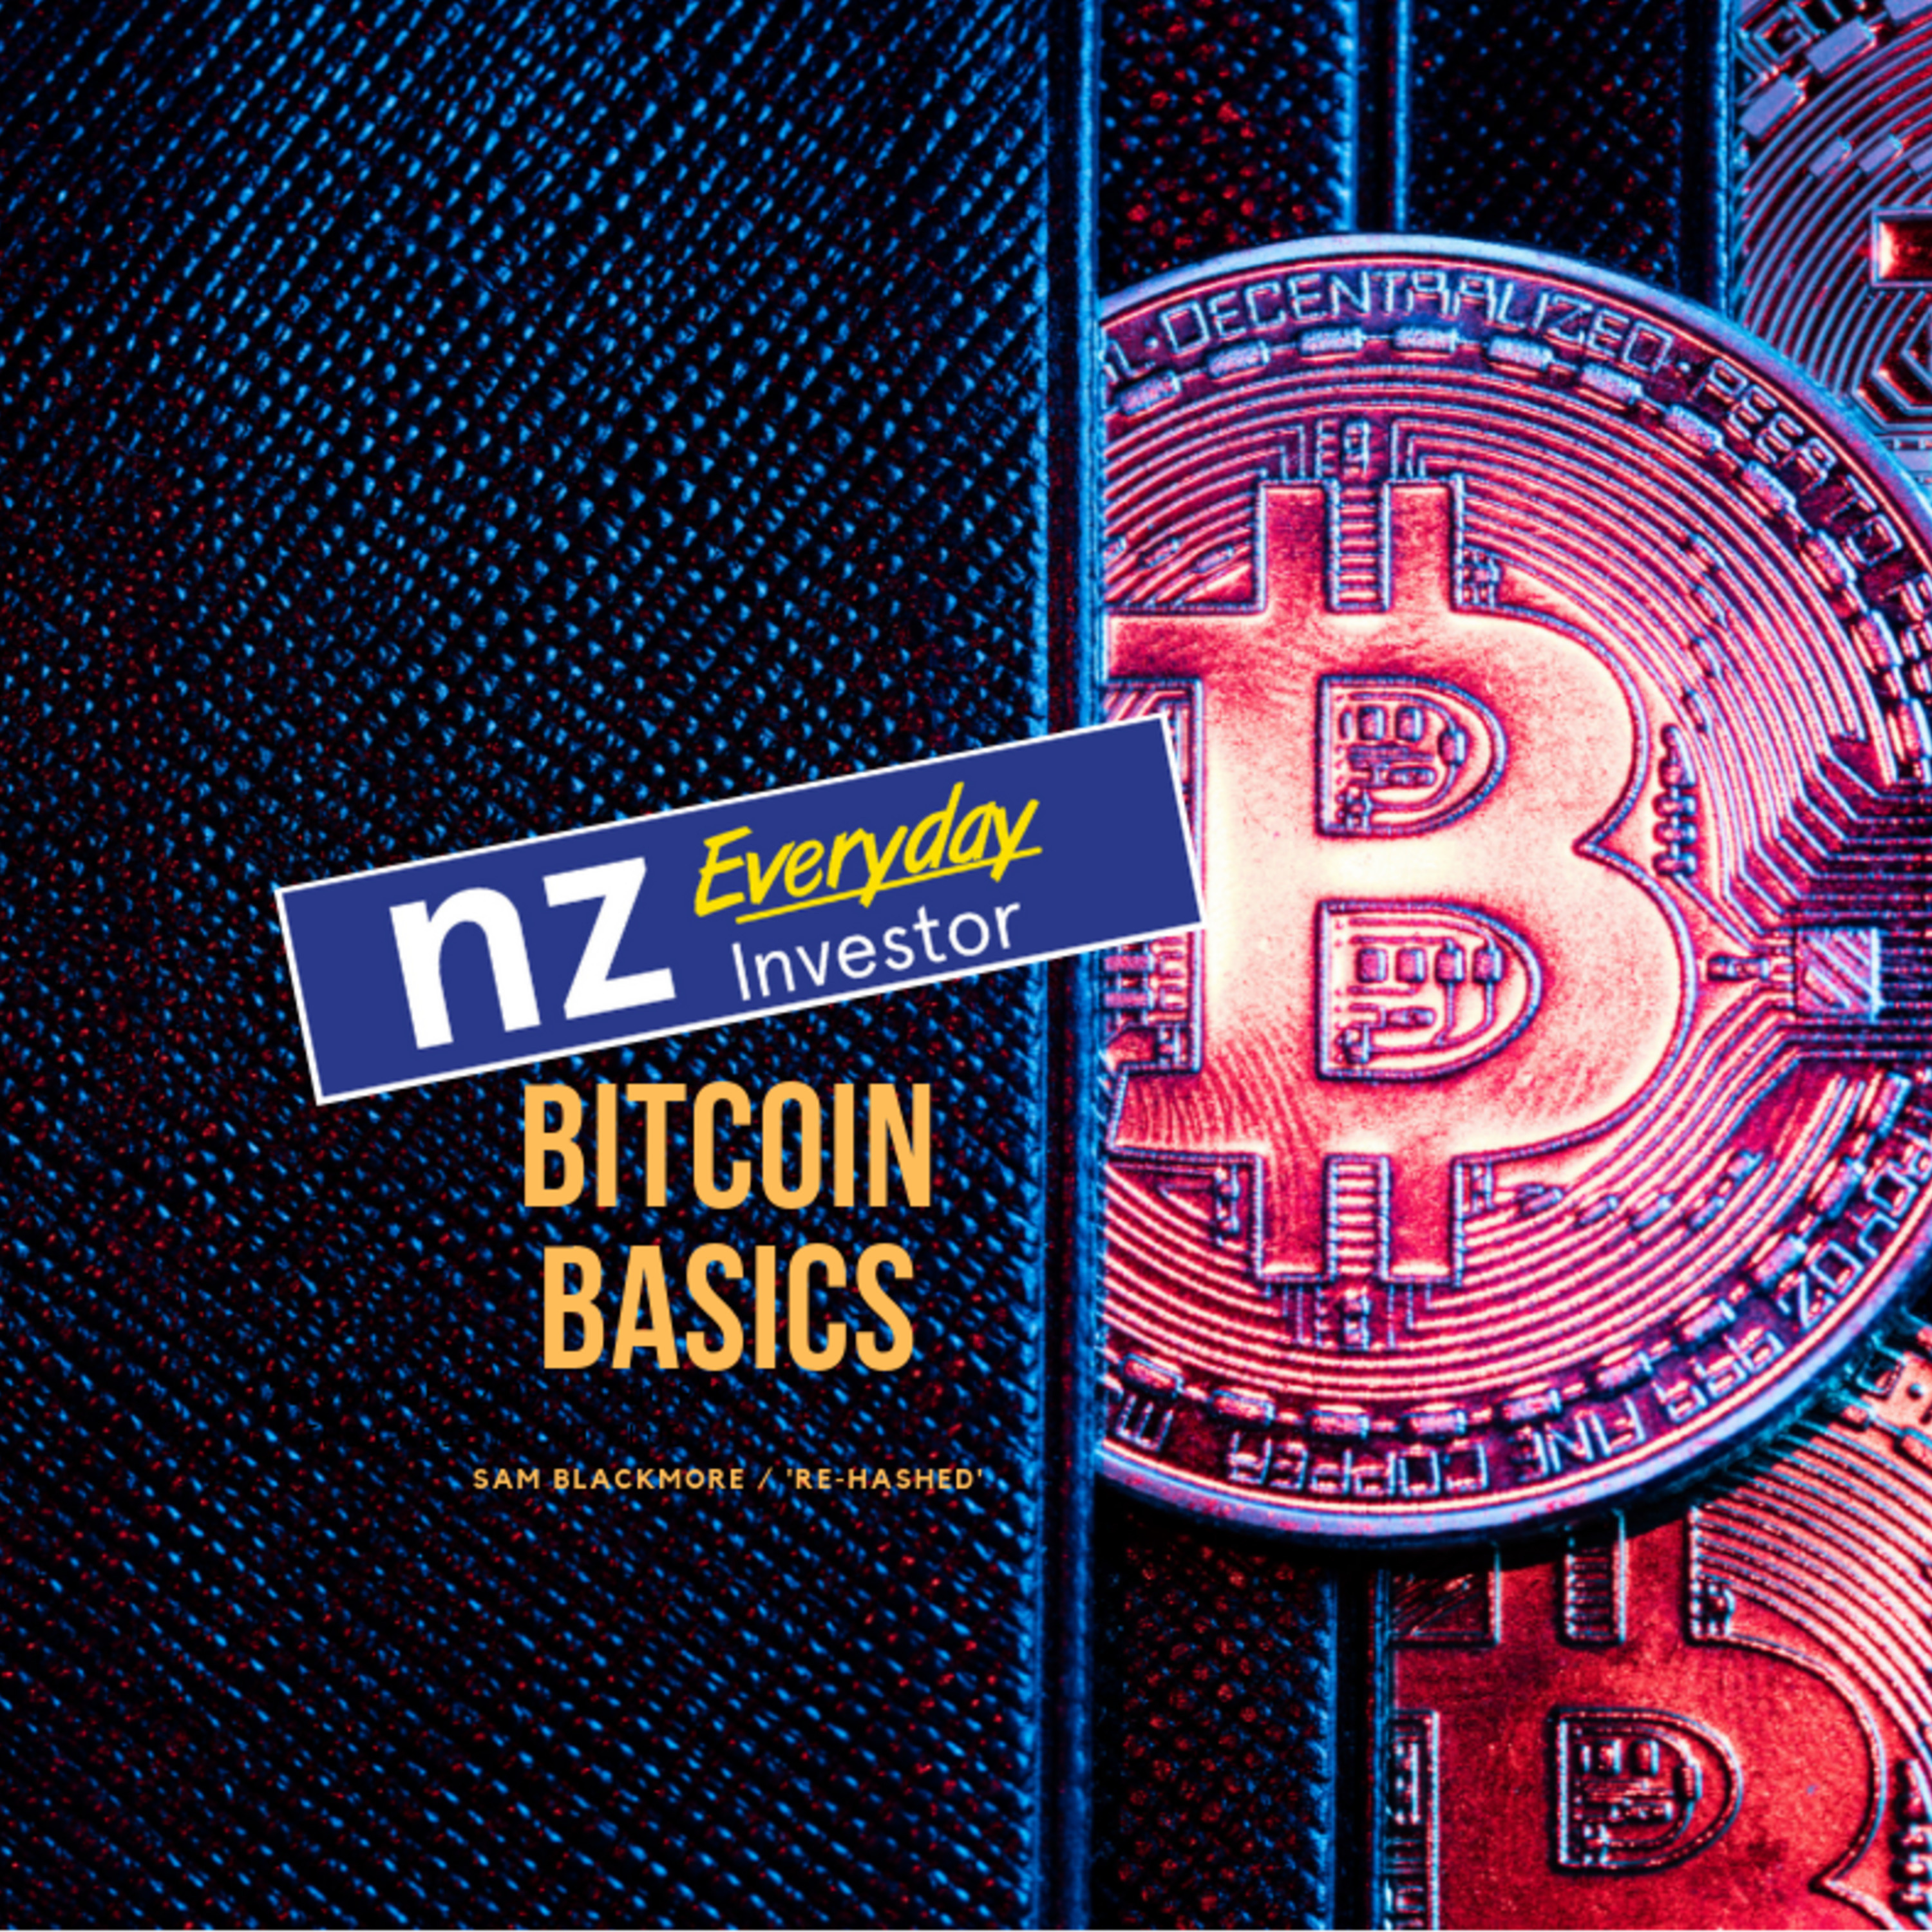 Bitcoin Basics / Sam Blackmore